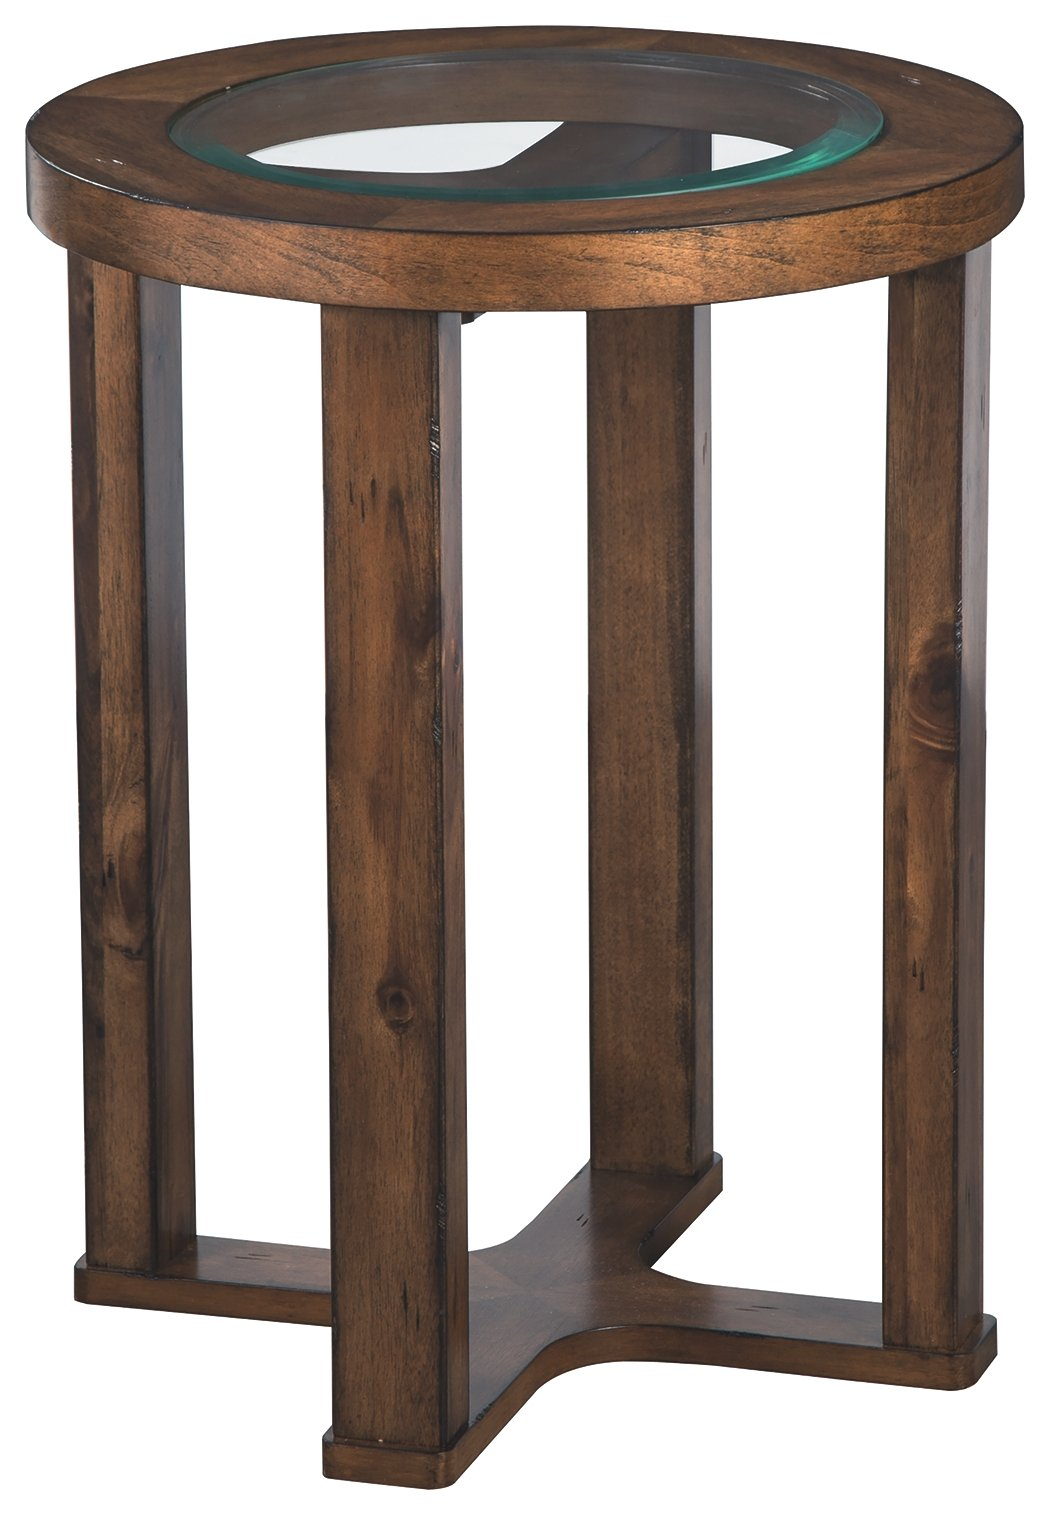 Hannery Signature Design by Ashley End Table